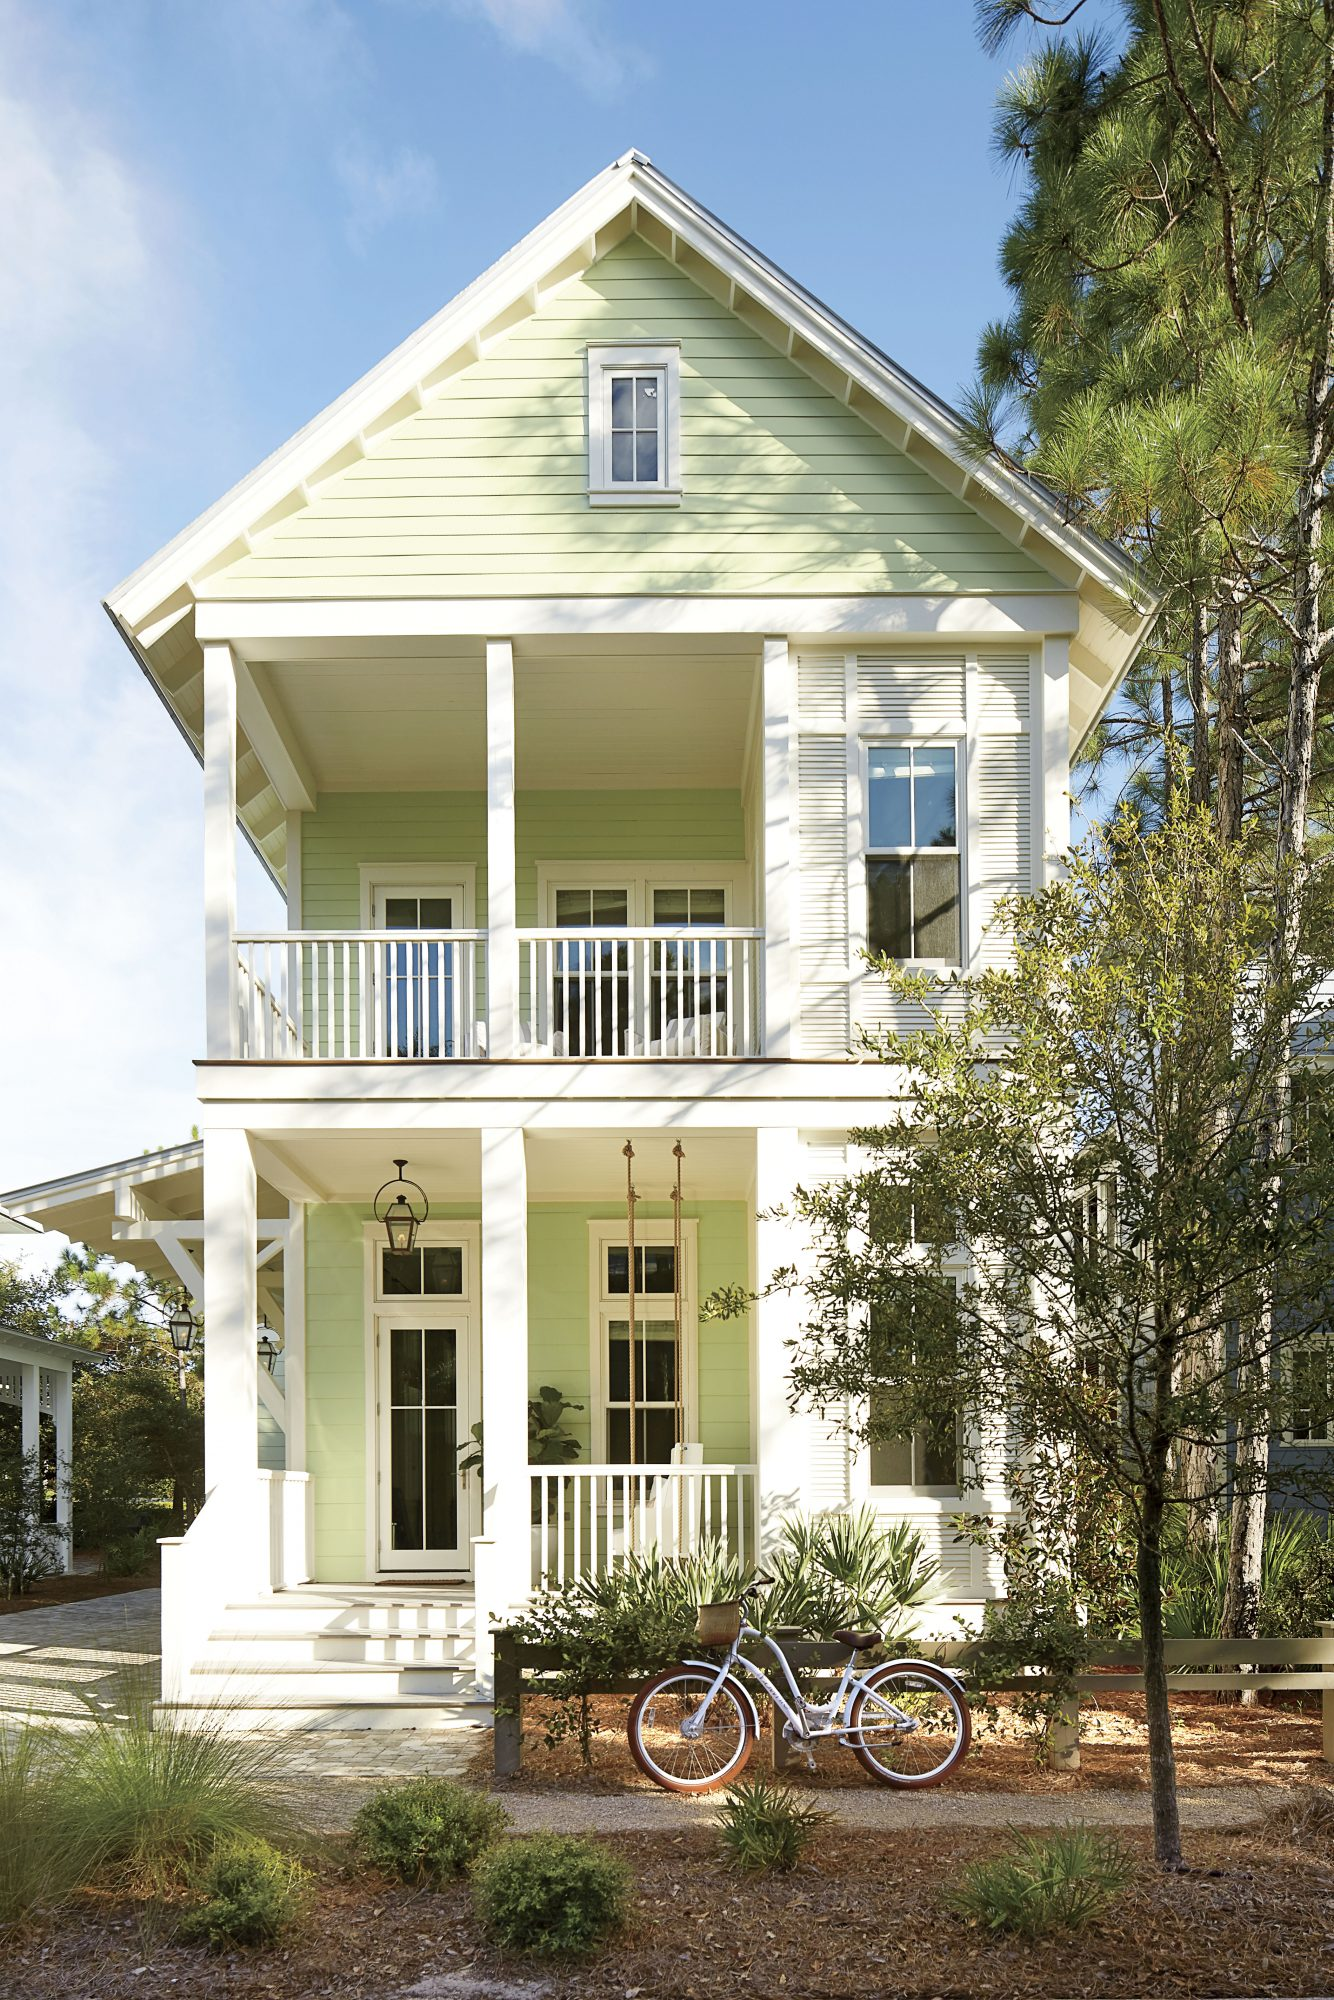 Maison Studio WaterColor, FL Mint Green Beach House Front Exterior with Bike